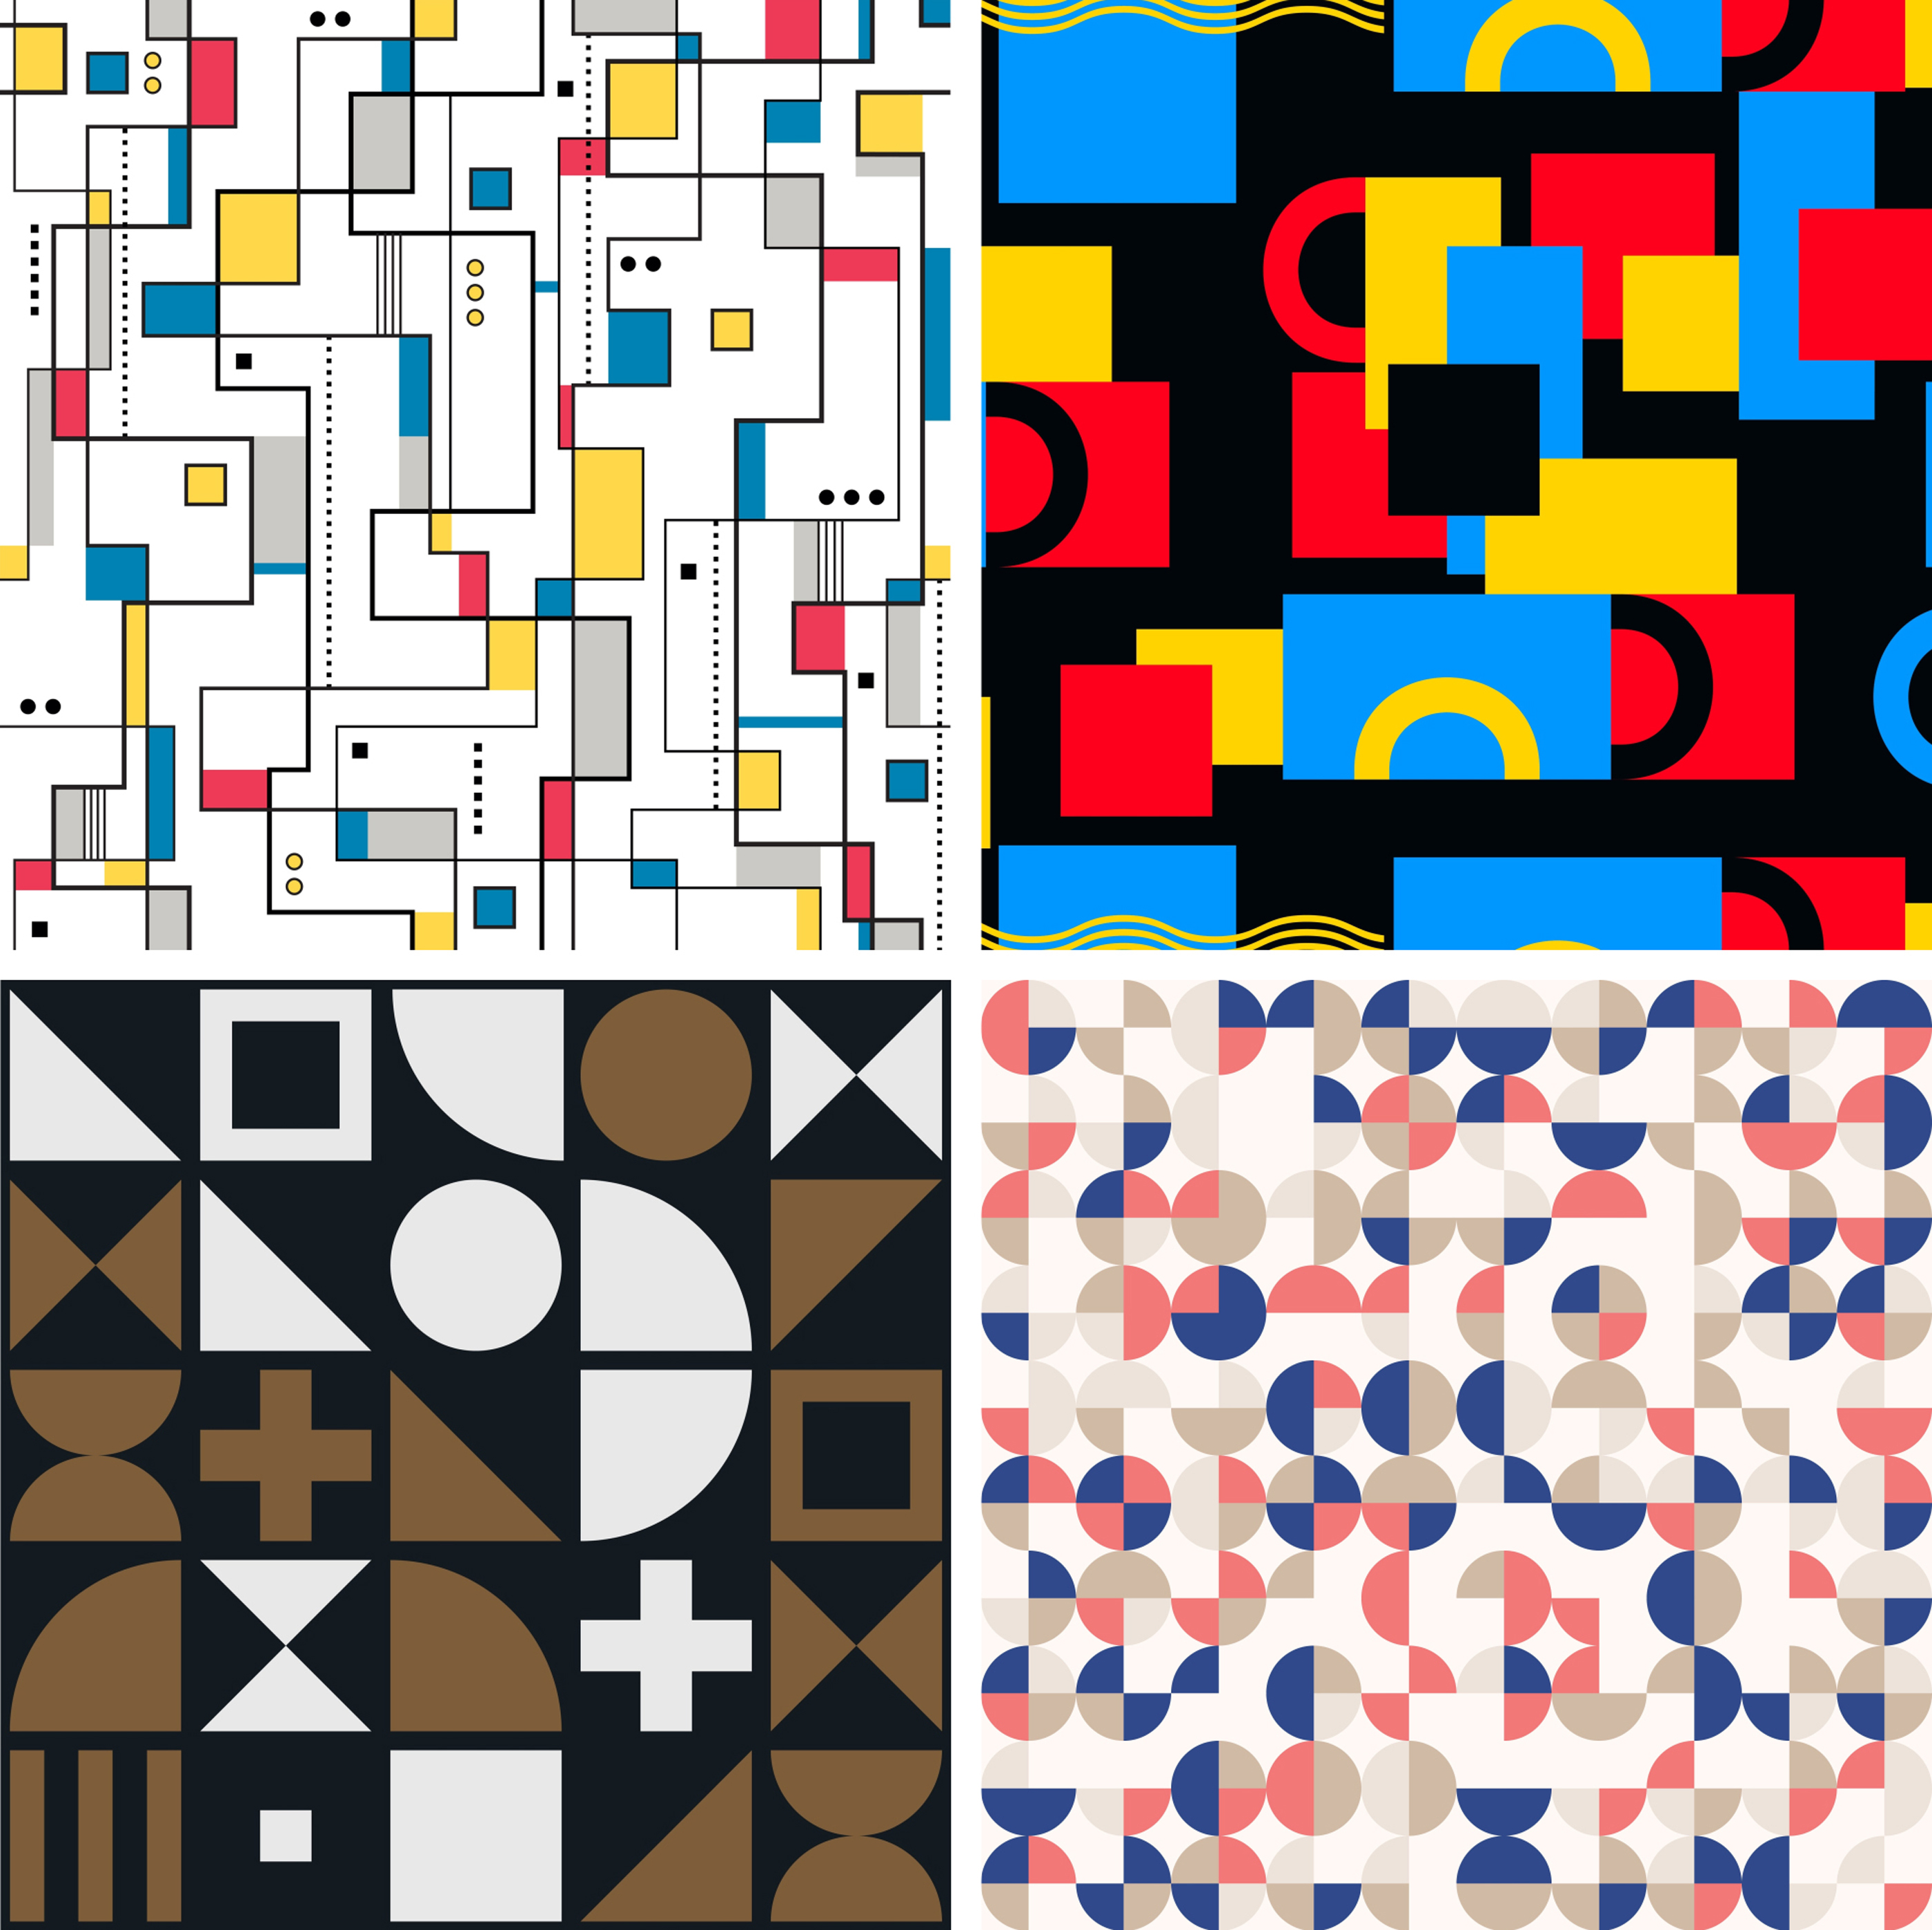 A collage of Bauhaus designs